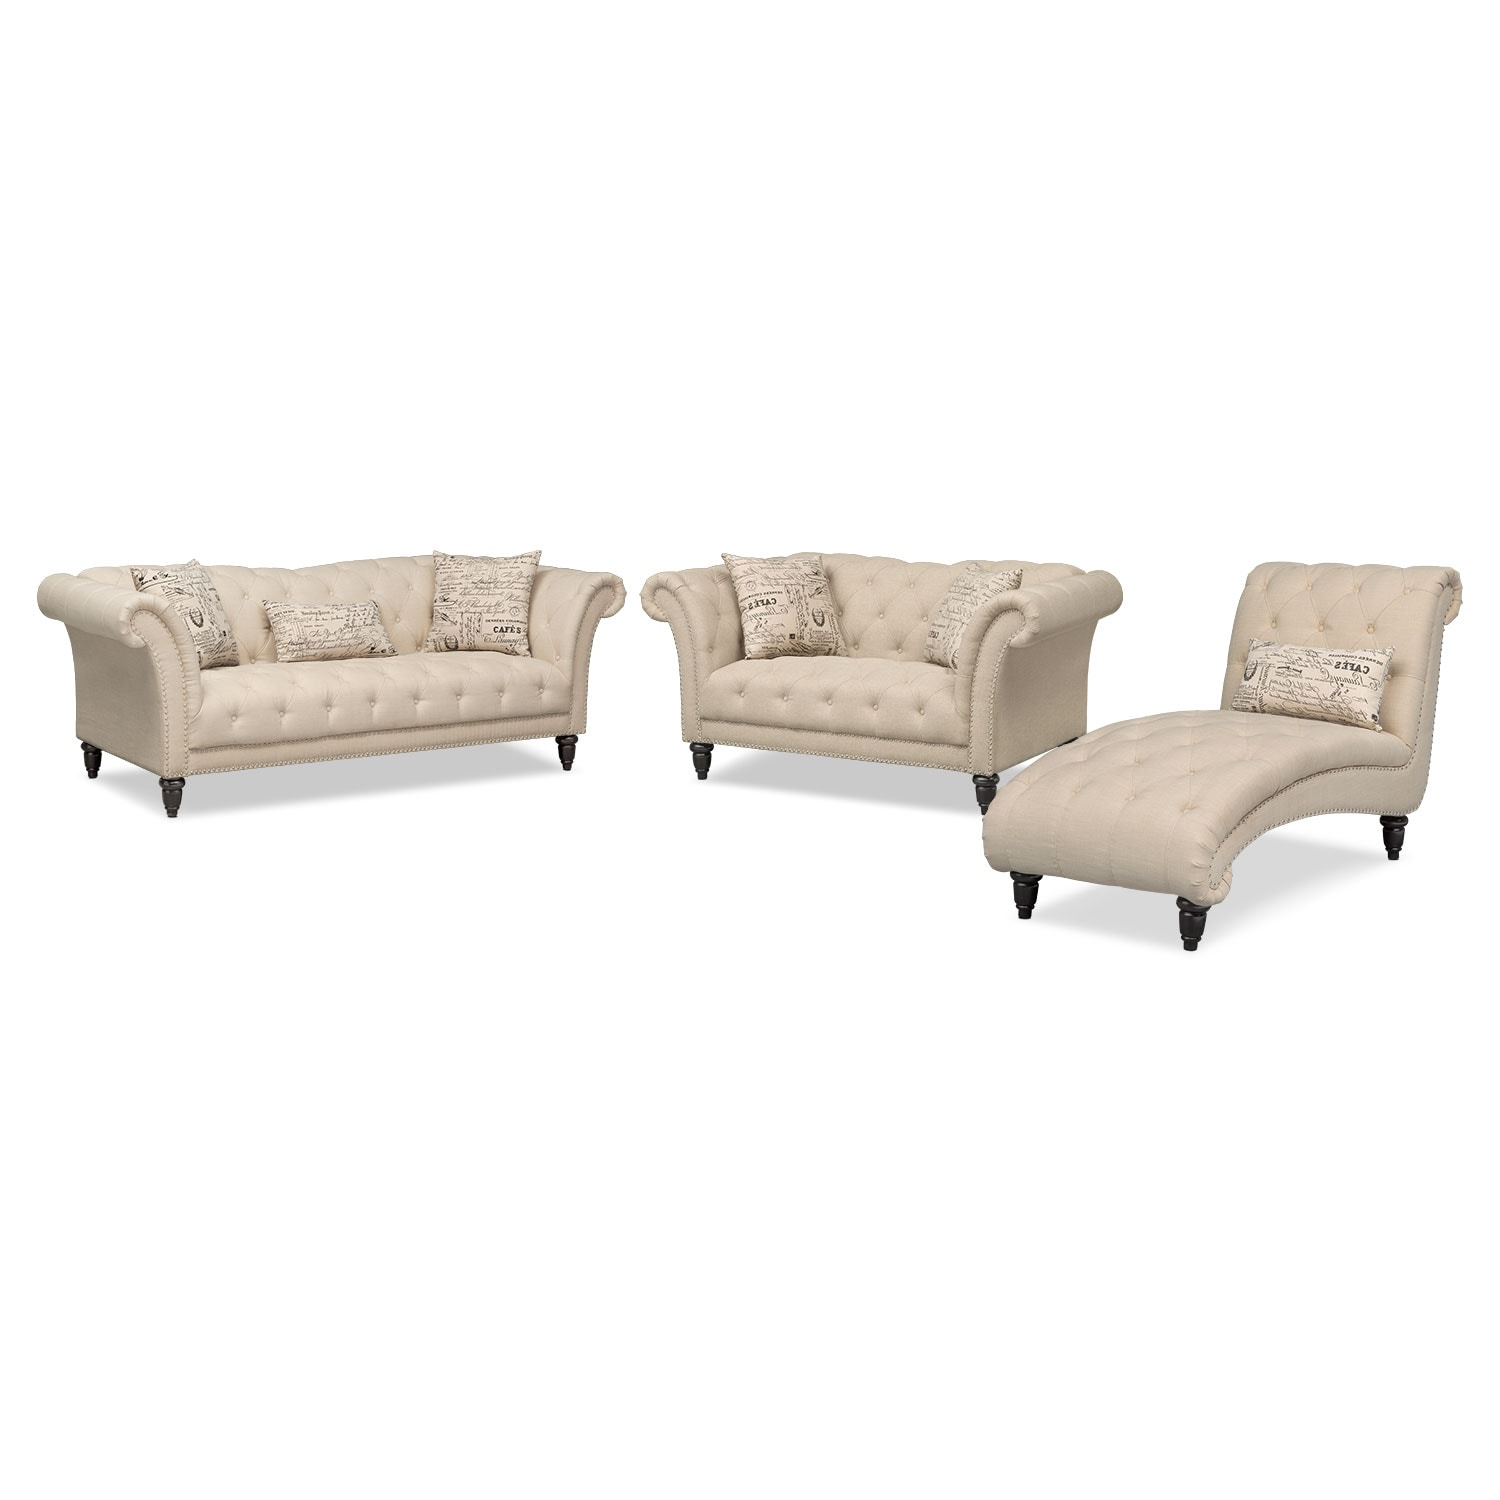 Living Room Furniture   Marisol Sofa, Loveseat And Chaise Set   Beige